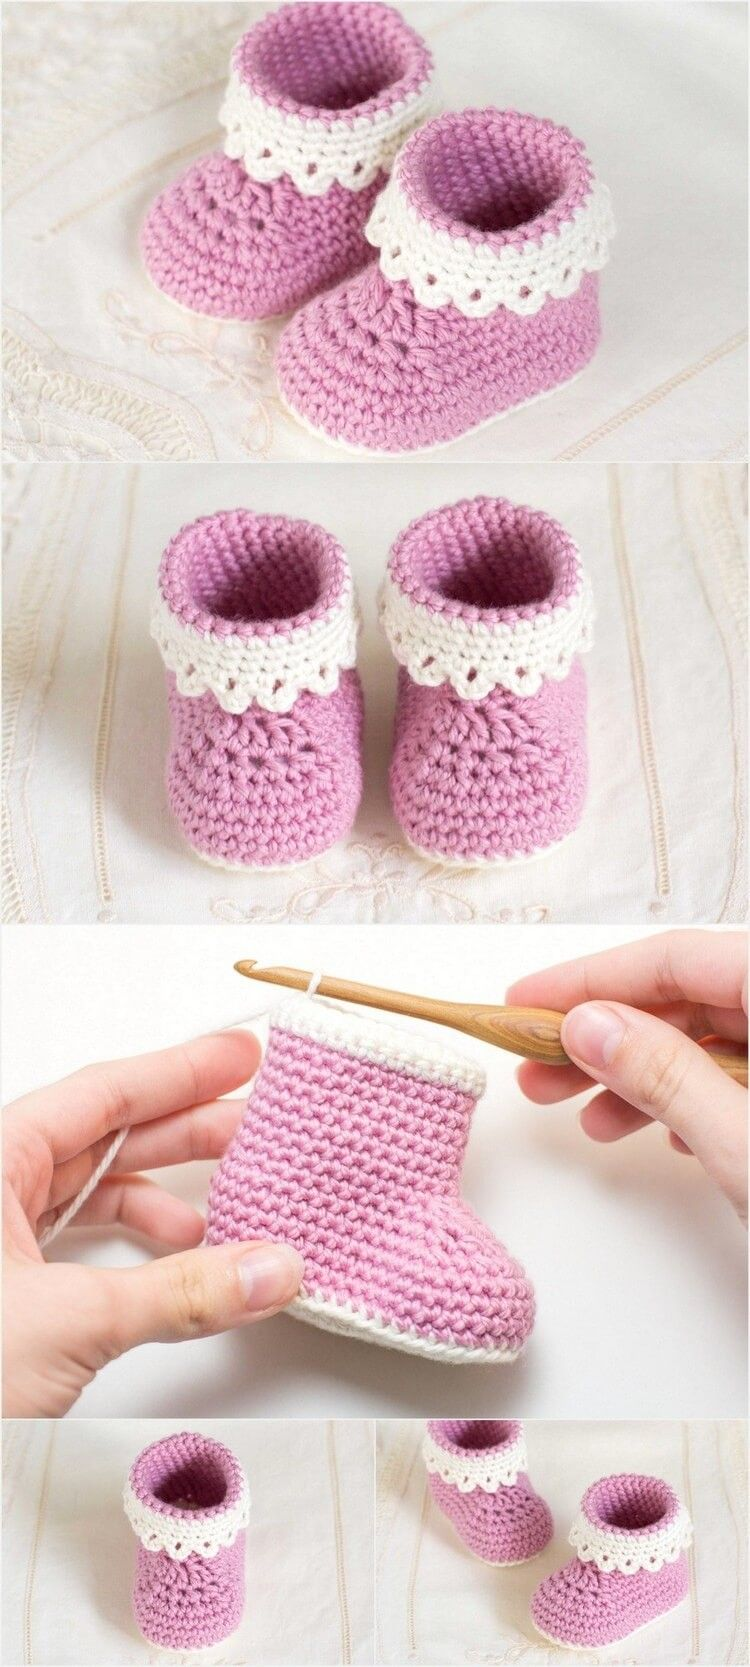 A beautifully crafted 'lady' crochet pattern for a little lady. The pattern is easy and someone having basic crochet stitching skill can make it easily. The pattern is for up to 6 months old baby and is knitted from bottom to top and inside out and around, when making the cuffs. For complete details, click the given link. #crochetbabyboots